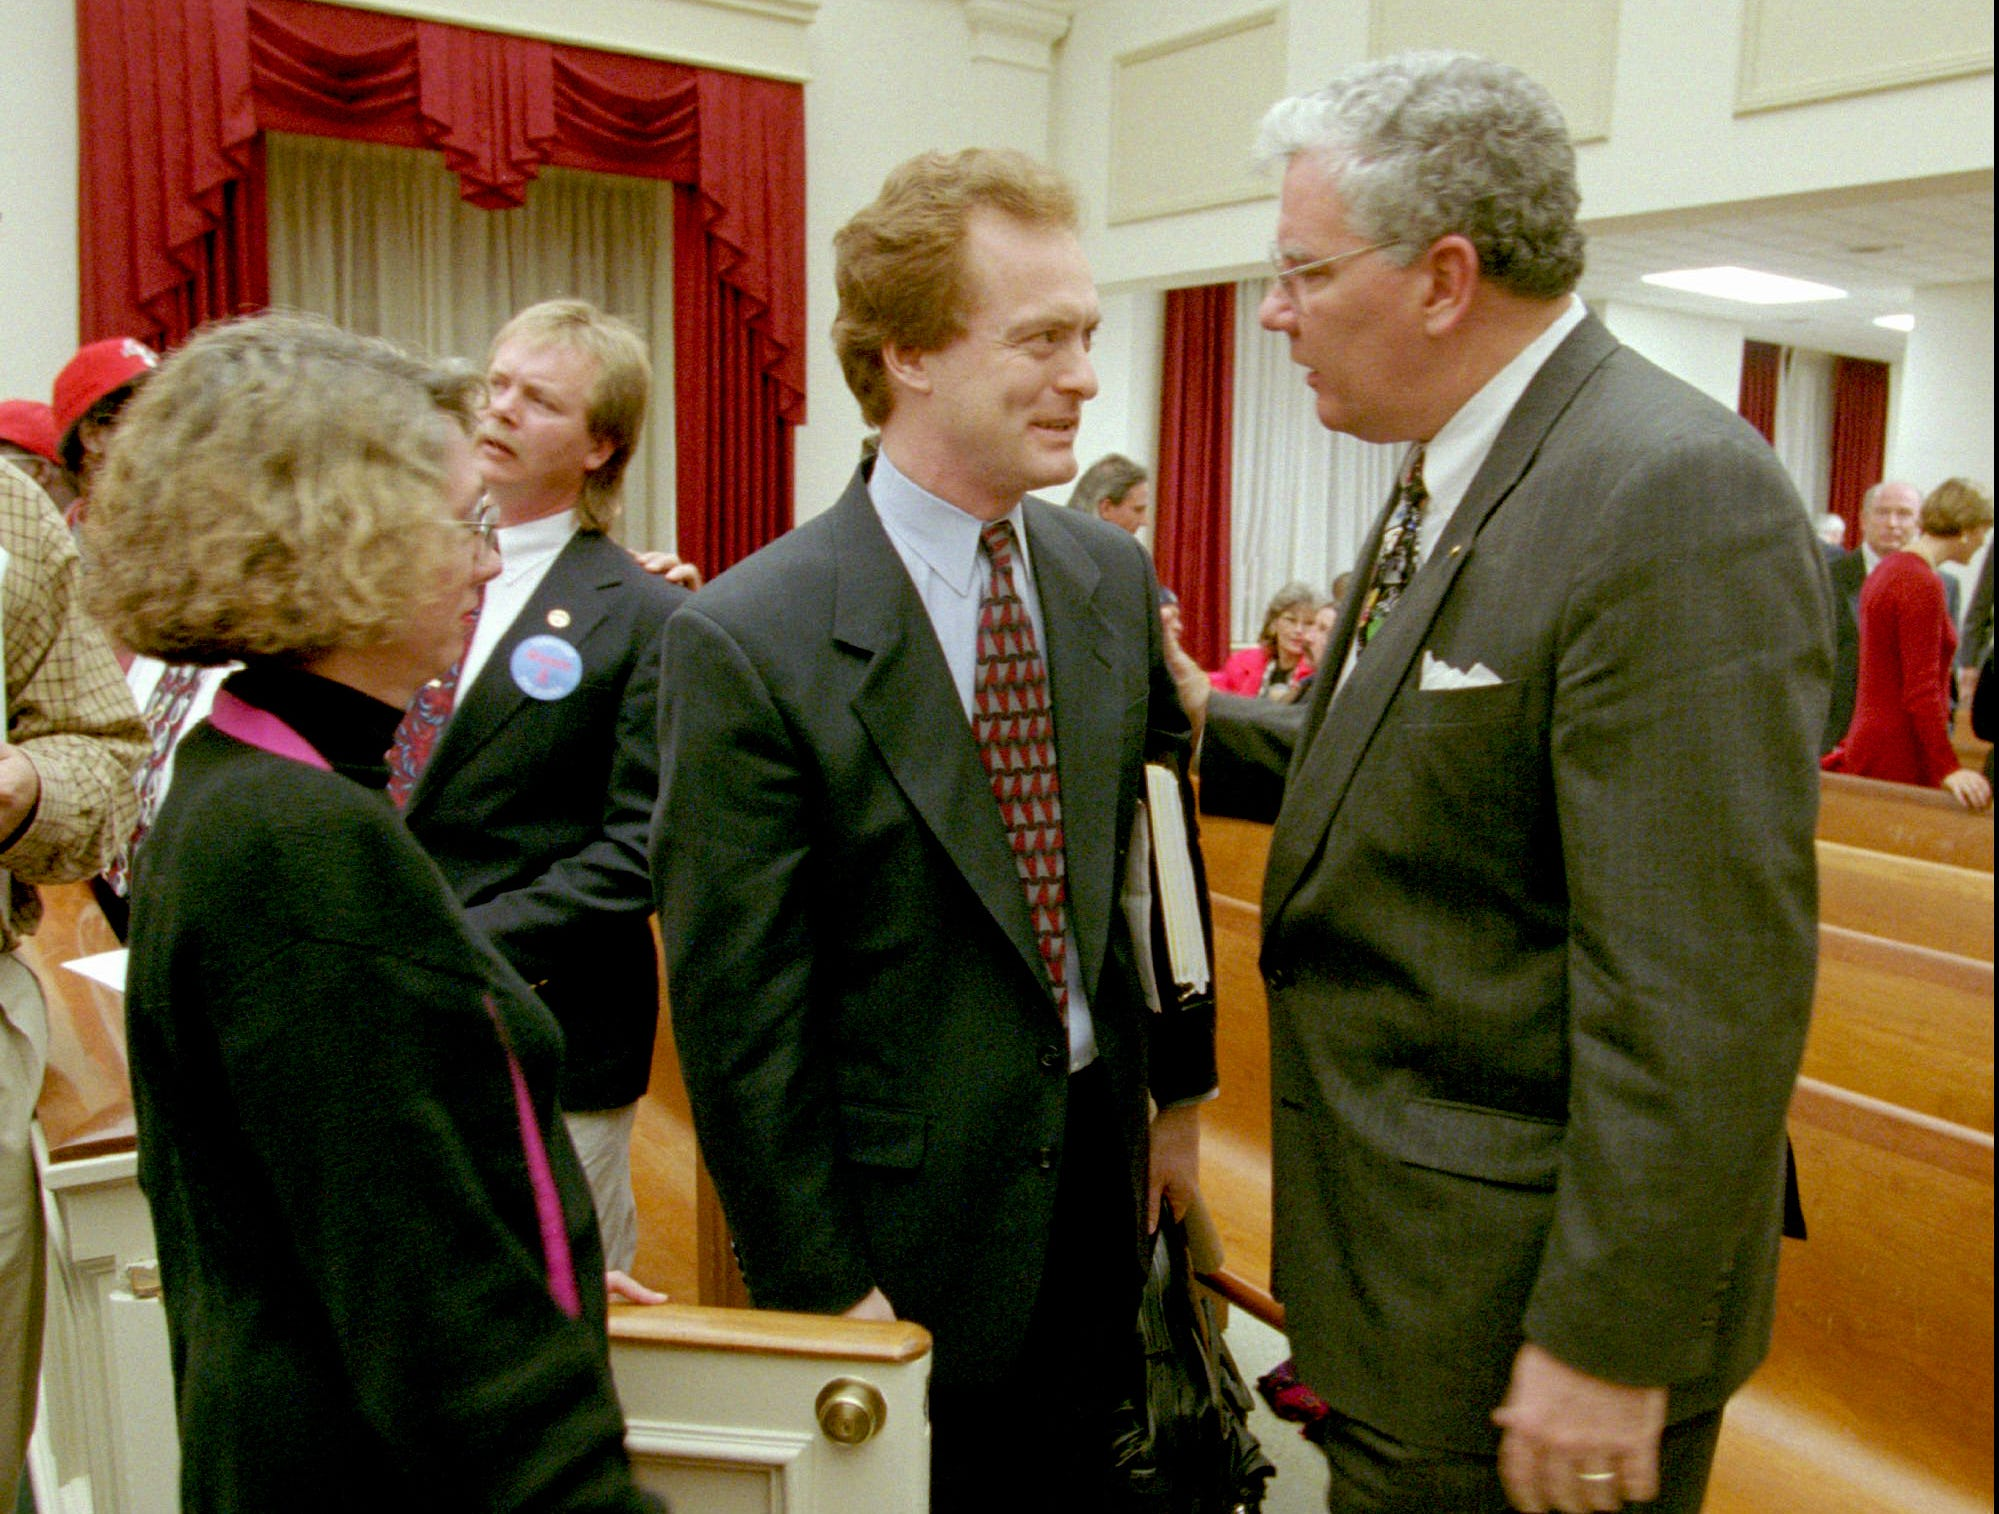 Attorney Byron Trauger, center, is congratulated by councilman George Armistead, right, in the Nashville Metro council chamber on Nov. 21, 1995, after the council voted 28-9 to approve a legal agreement between the mayor and Houston Oilers owner Bud Adams to move the NFL team to Nashville. The vote extends to March the exclusive negotiating agreement between the city and the Oilers, which would have expired Nov. 25. Trauger heads Nashville's negotiating team.